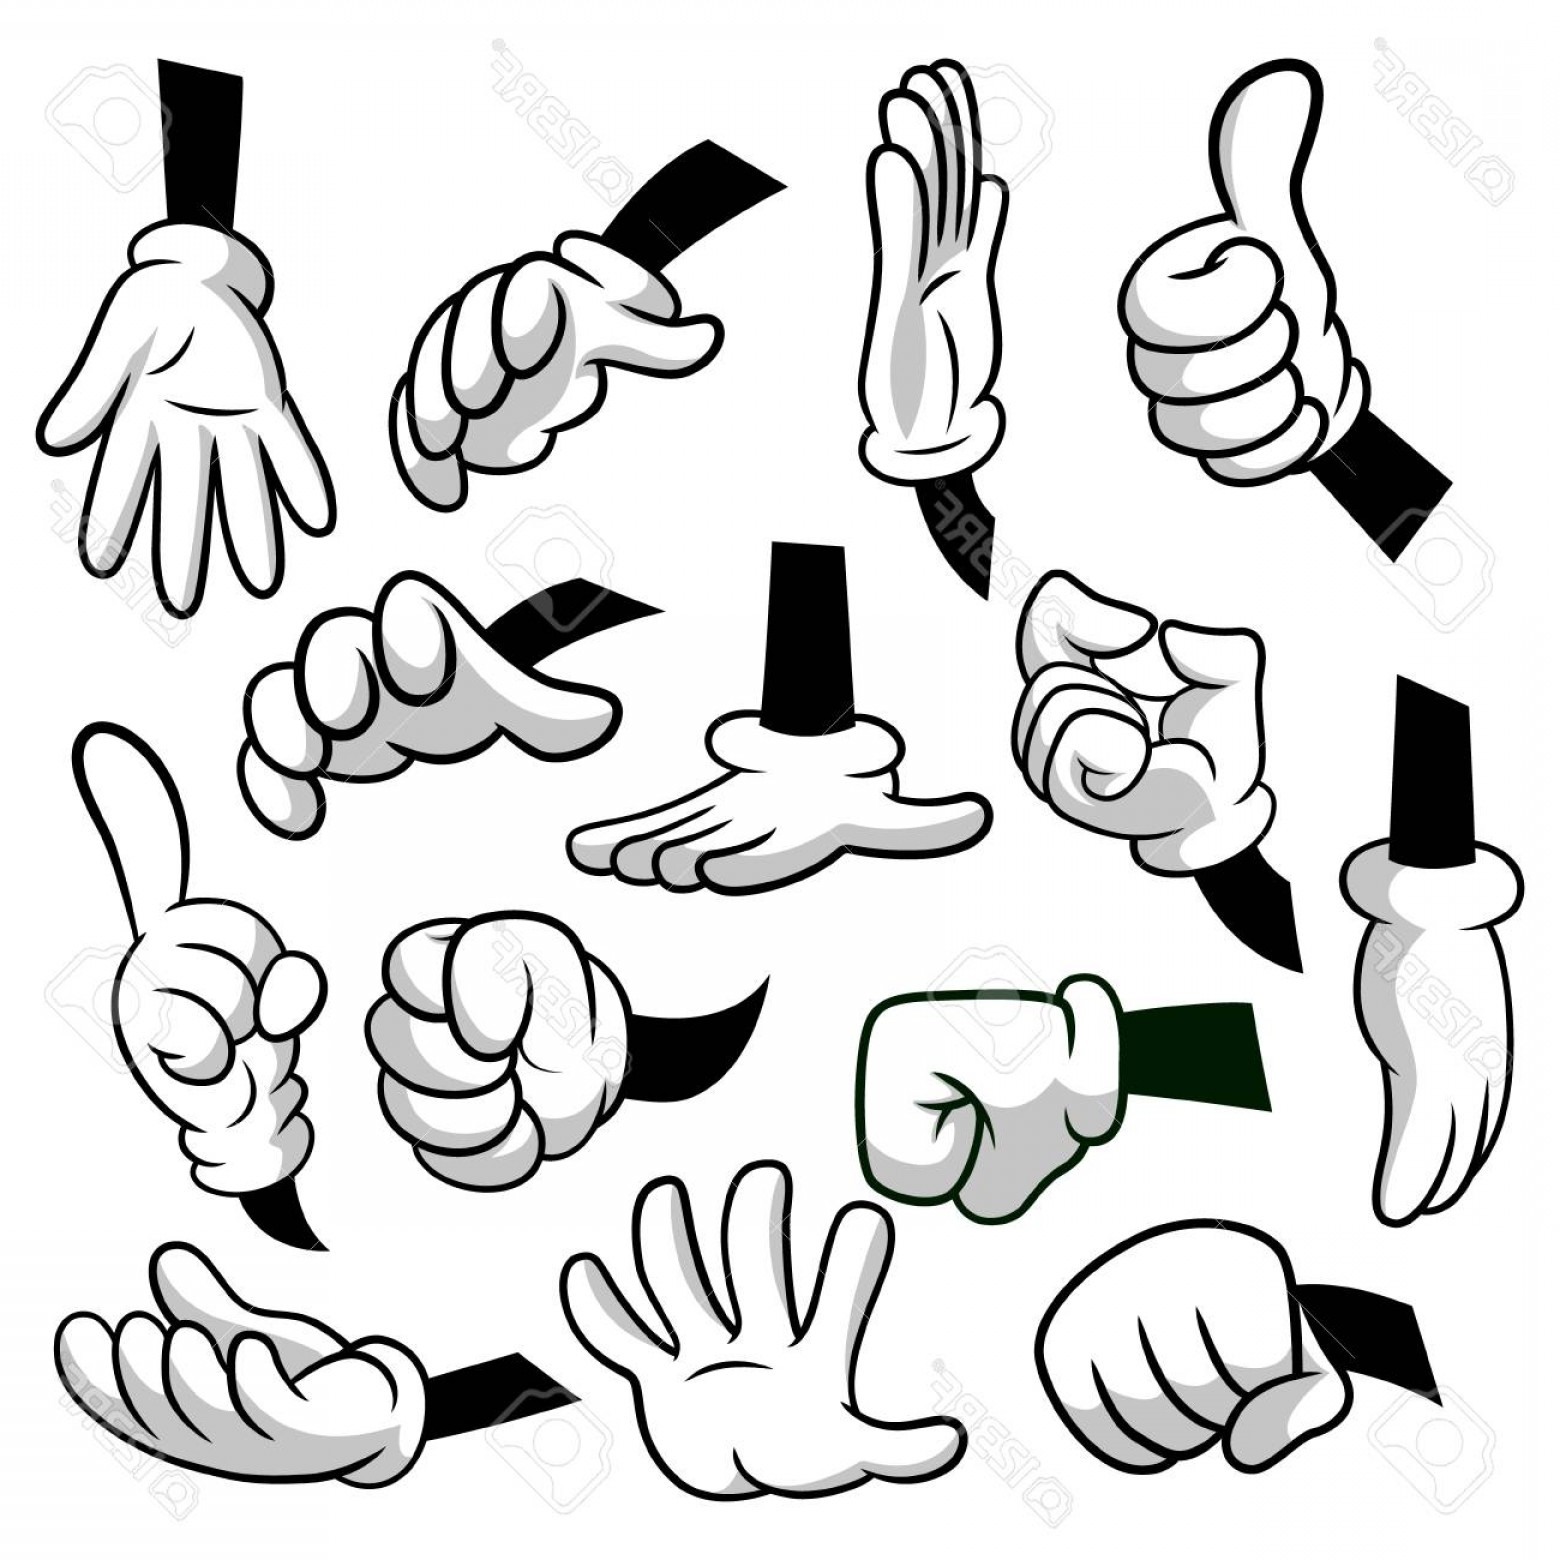 Photostock Vector Cartoon Hands With Gloves Icon Set Isolated On.